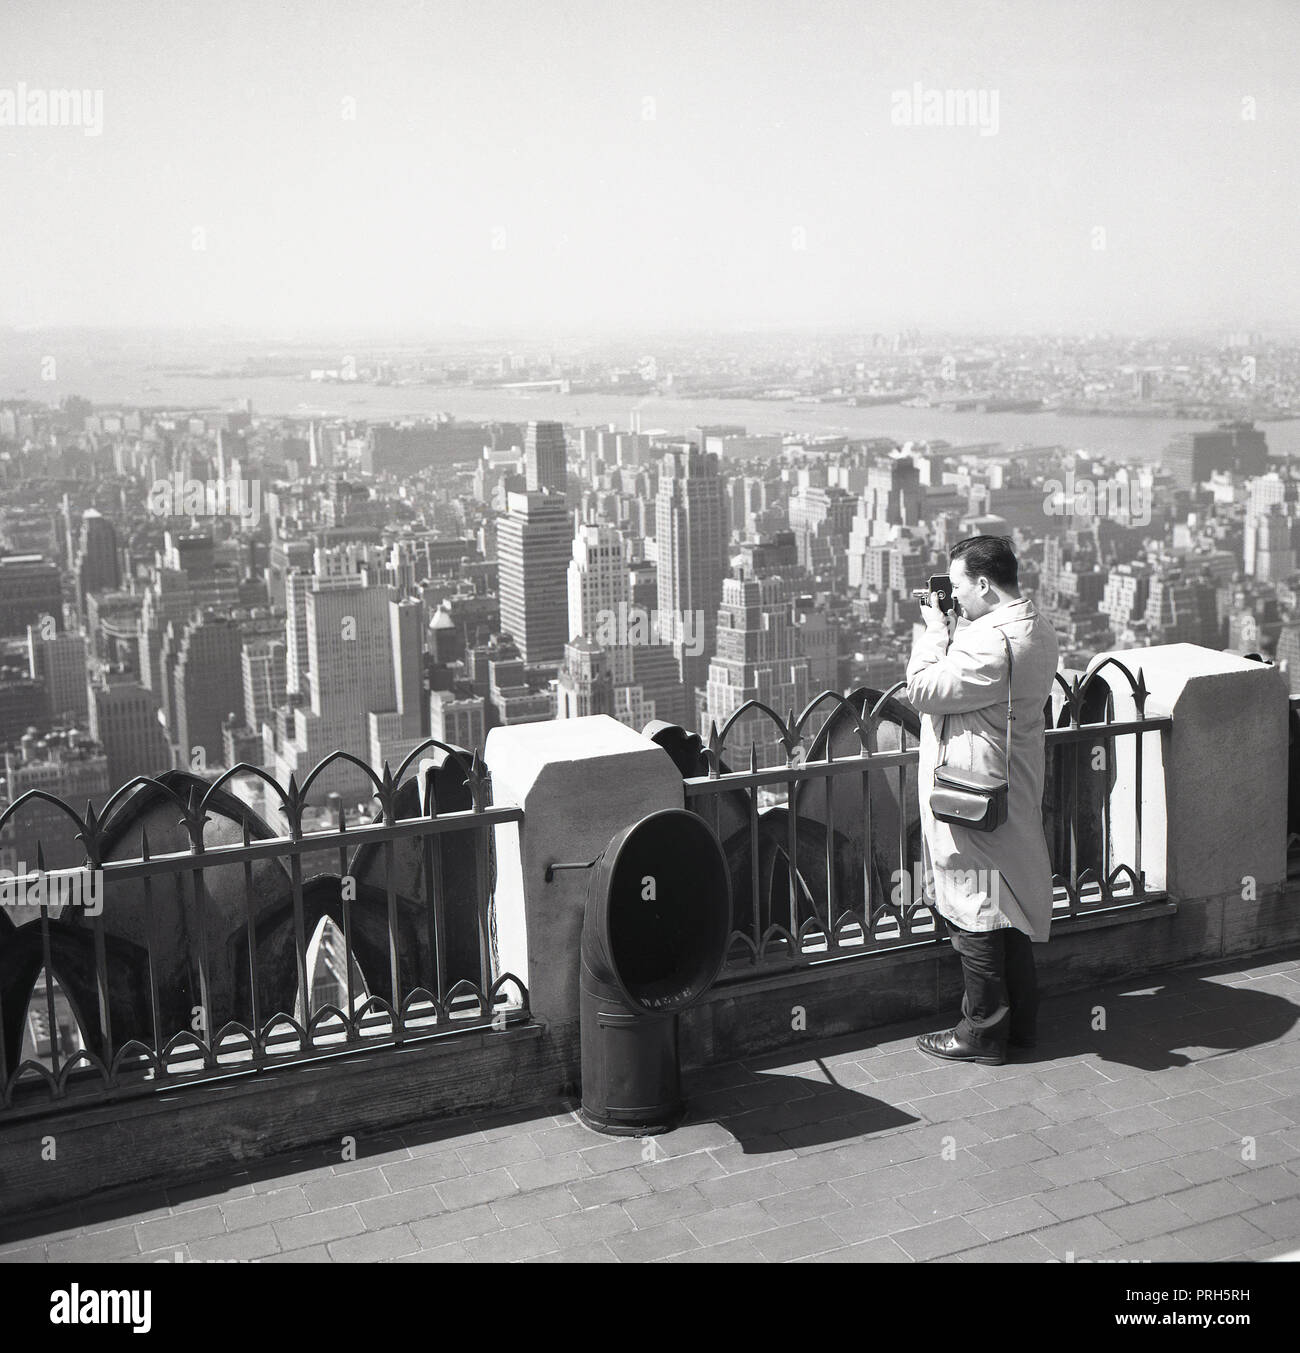 1950s, historical, man using a cine film camera to film the skyline and views of New York city from the top of the Empire State building, New York, NY, USA. - Stock Image